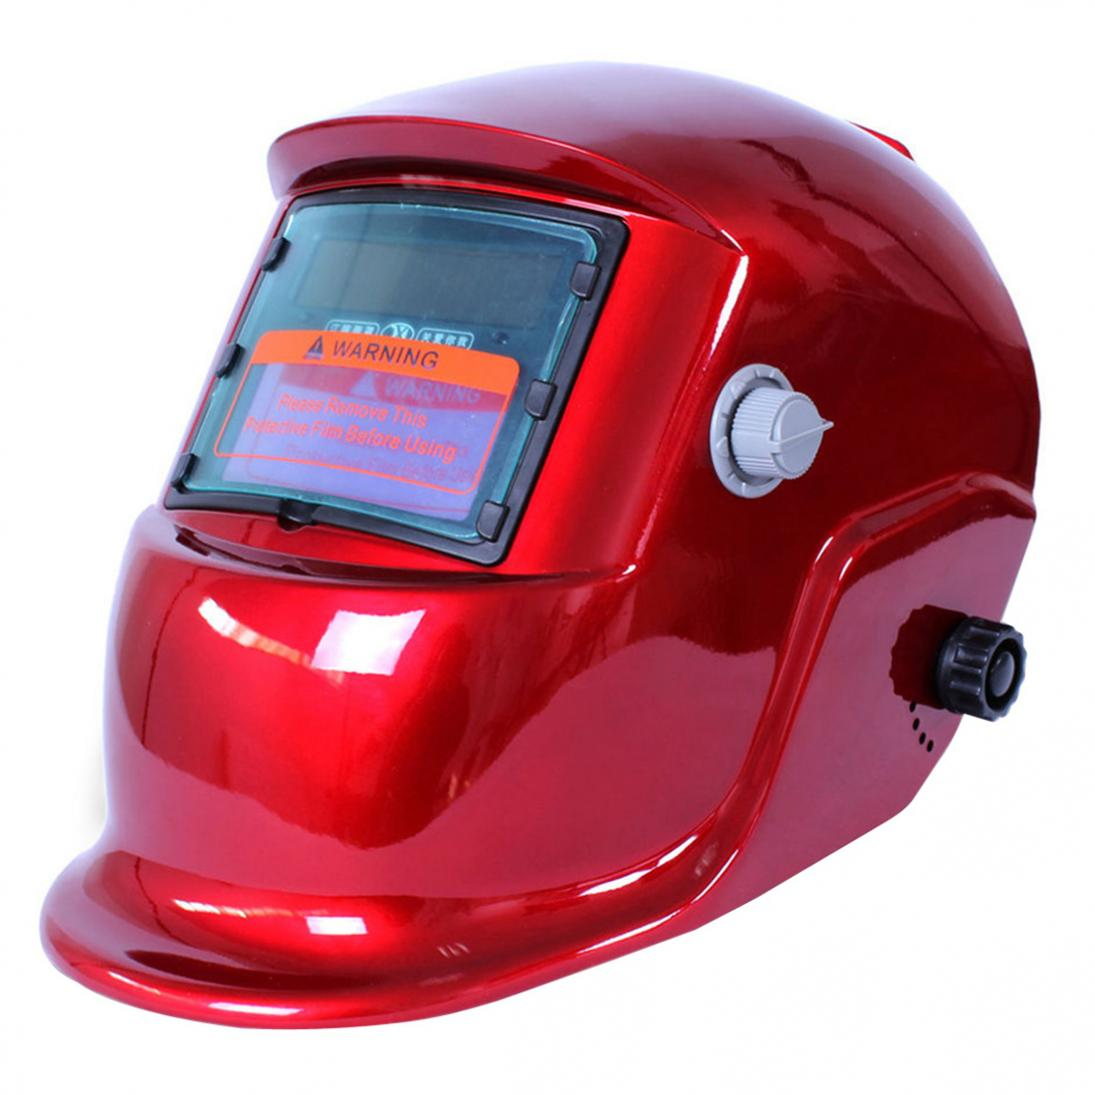 Red Cover Auto Darkening Solar Welders Welding Helmet Mask with Grinding Function Ideal for ARC/MIG/TIG/Stick Welding mari sinila jalgpalluri naine luksuslik aasta itaalias